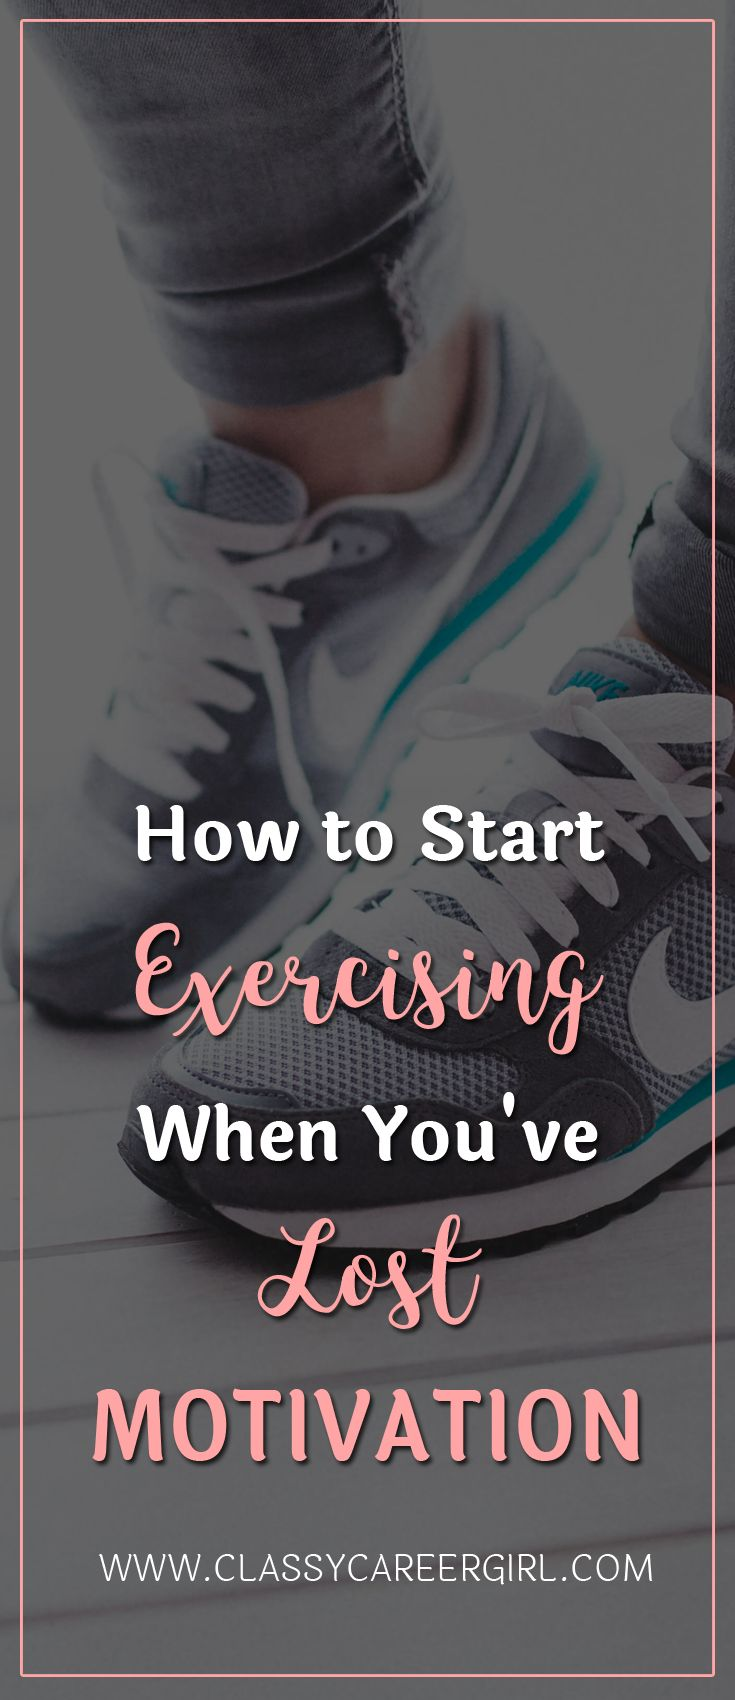 How to Start Exercising When You've Lost Motivation  Have you slacked off on your exercise routine? Maintaining your motivation is a very important task when are developing a healthy lifestyle.  Creating a solid routine is imperative to maintaining your discipline and sparking your motivation.  Read More: http://www.classycareergirl.com/2016/08/5-tips-restart-exercise-routine/